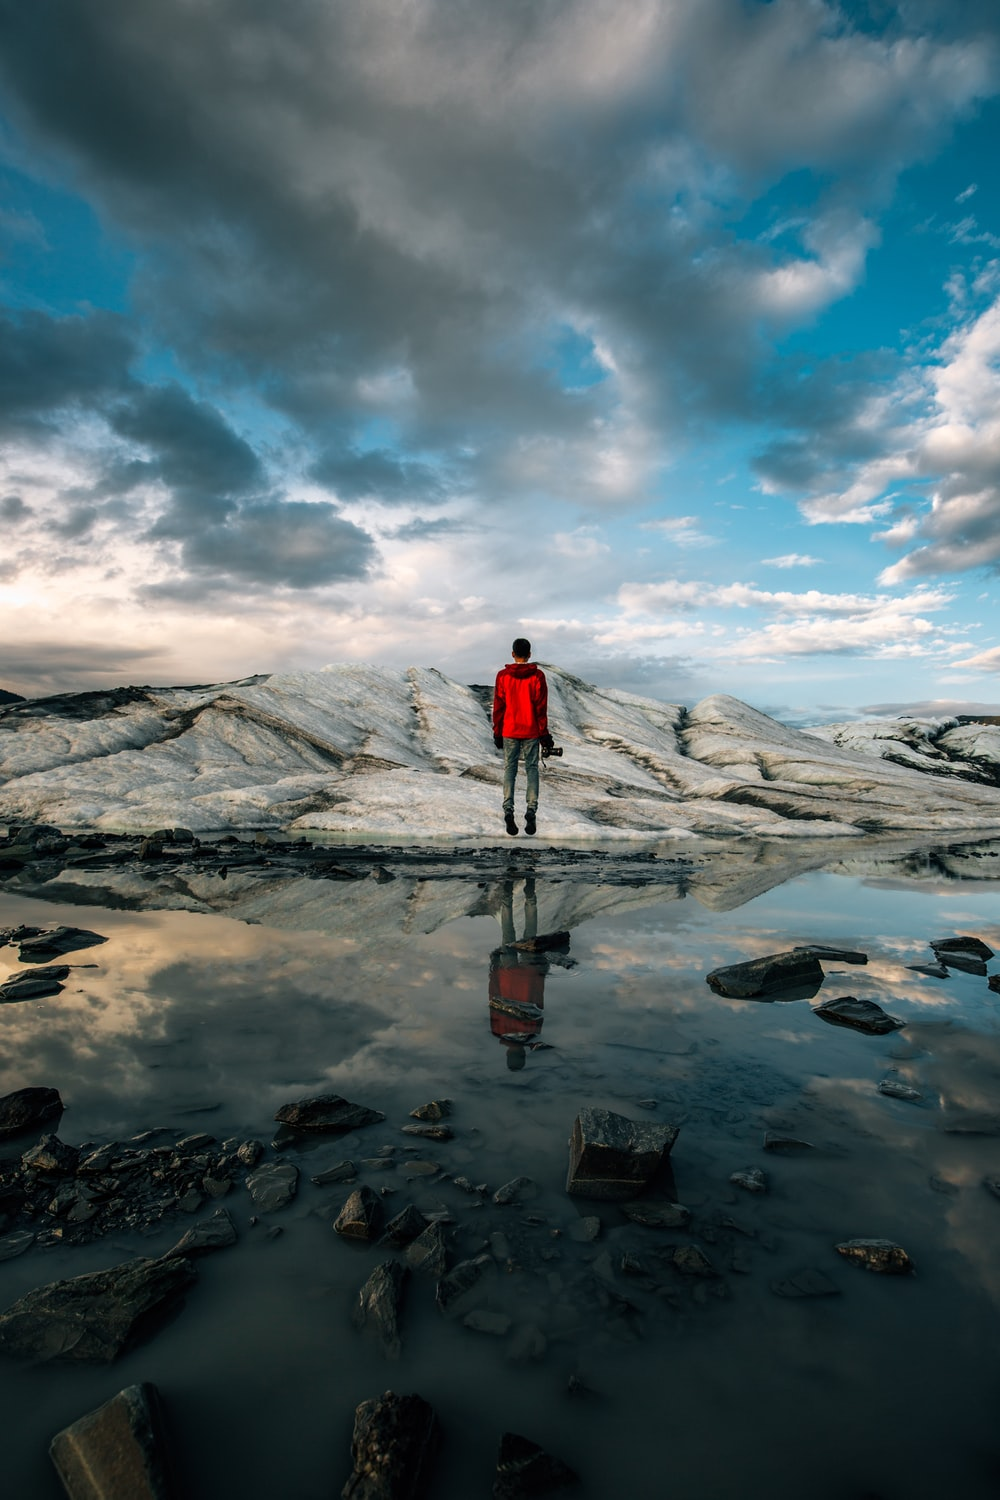 man standing near body of water of water